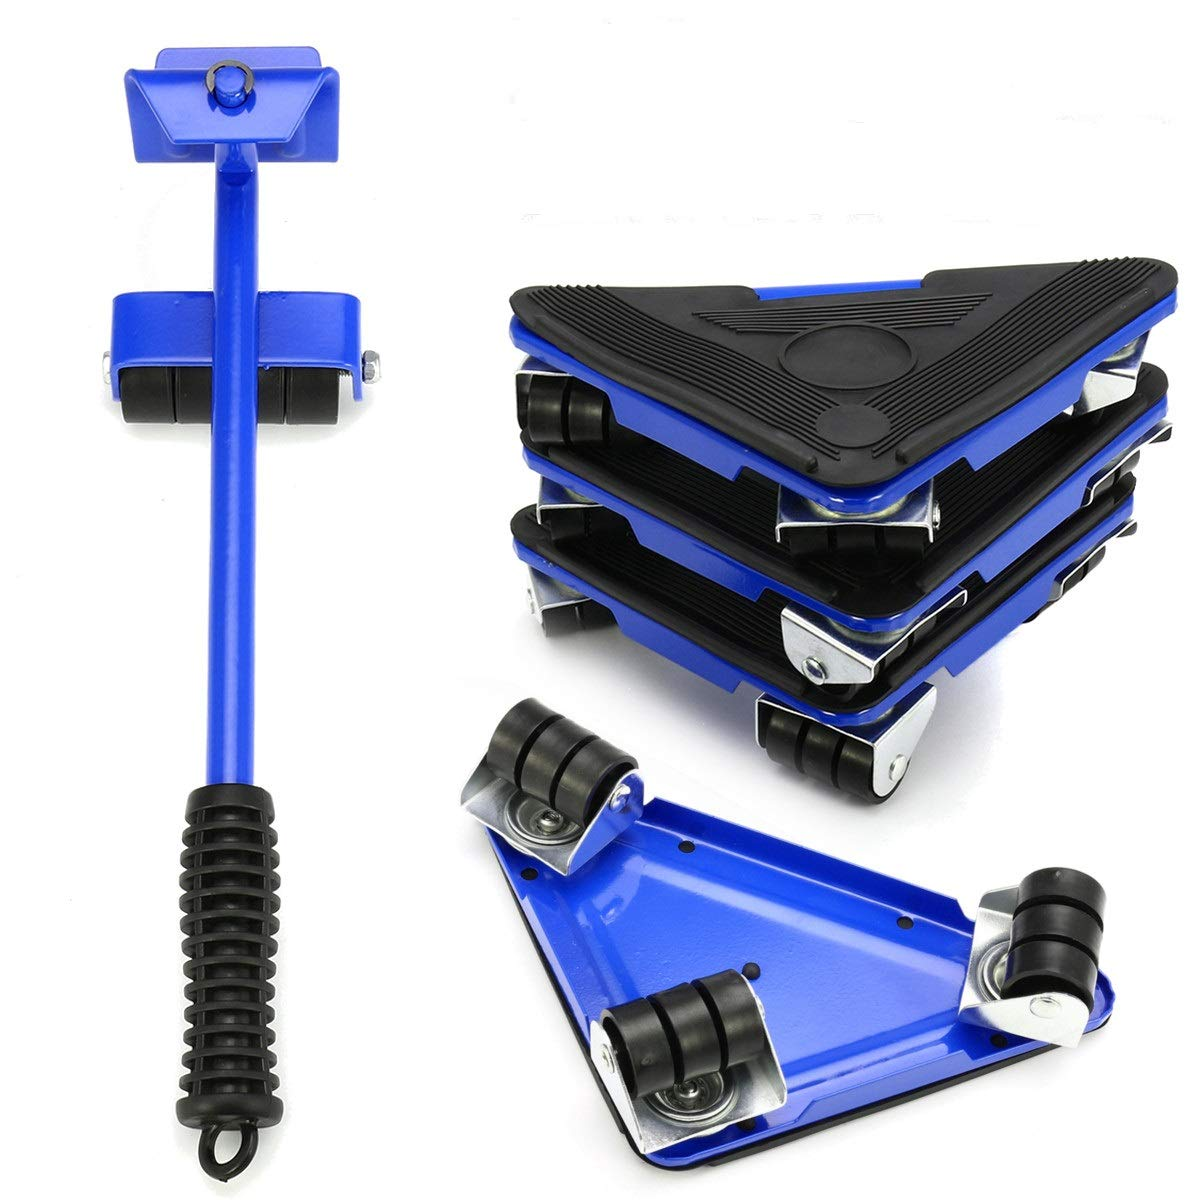 KINGSO 5PCS Furniture Lifter Moves Triple Wheels Mover Sliders Tools Kit Home Moving System Suitable for Sofas Couches and Refrigerators (Blue)